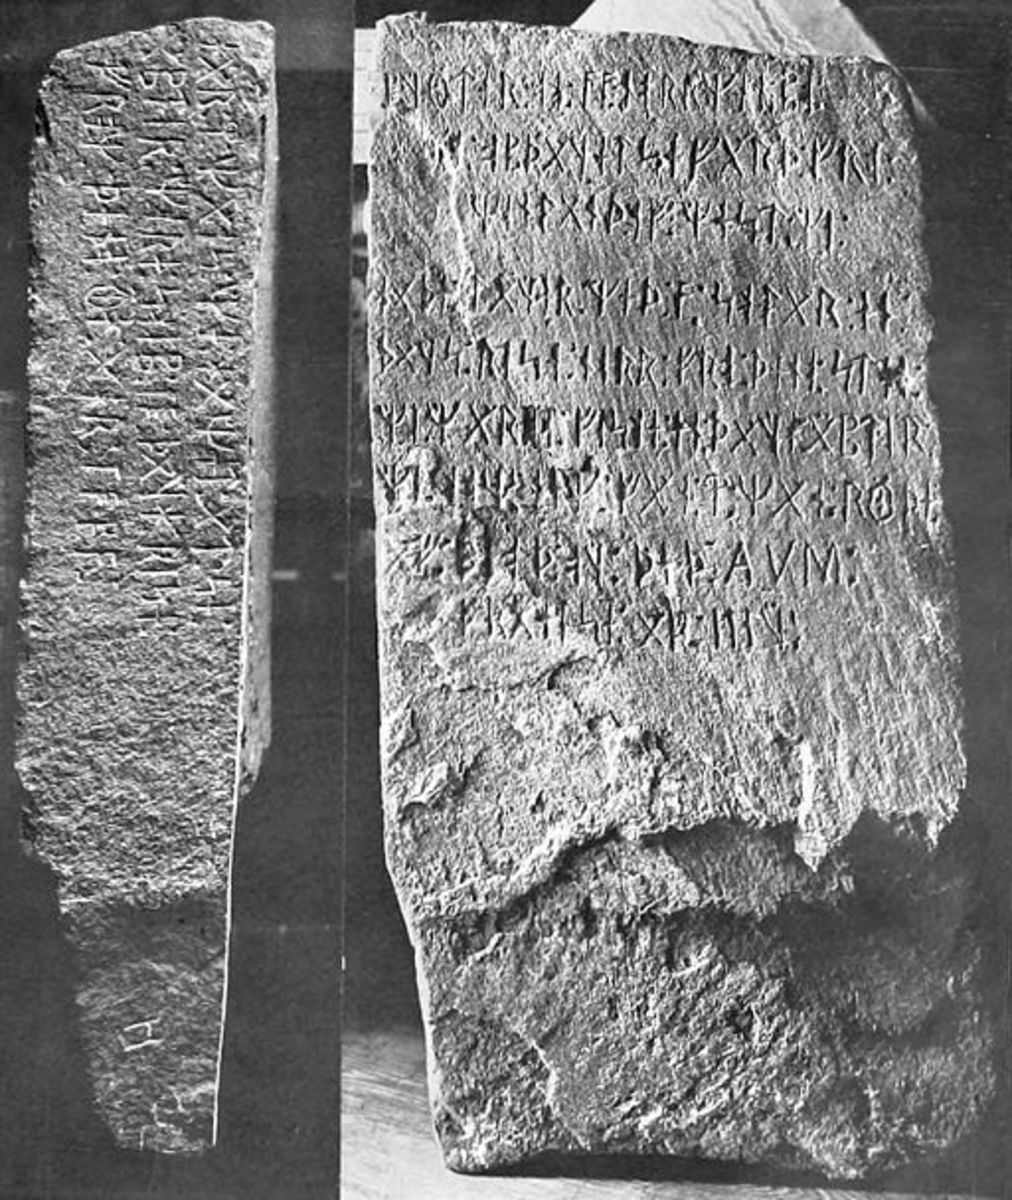 The Kensington Runestone Hoax